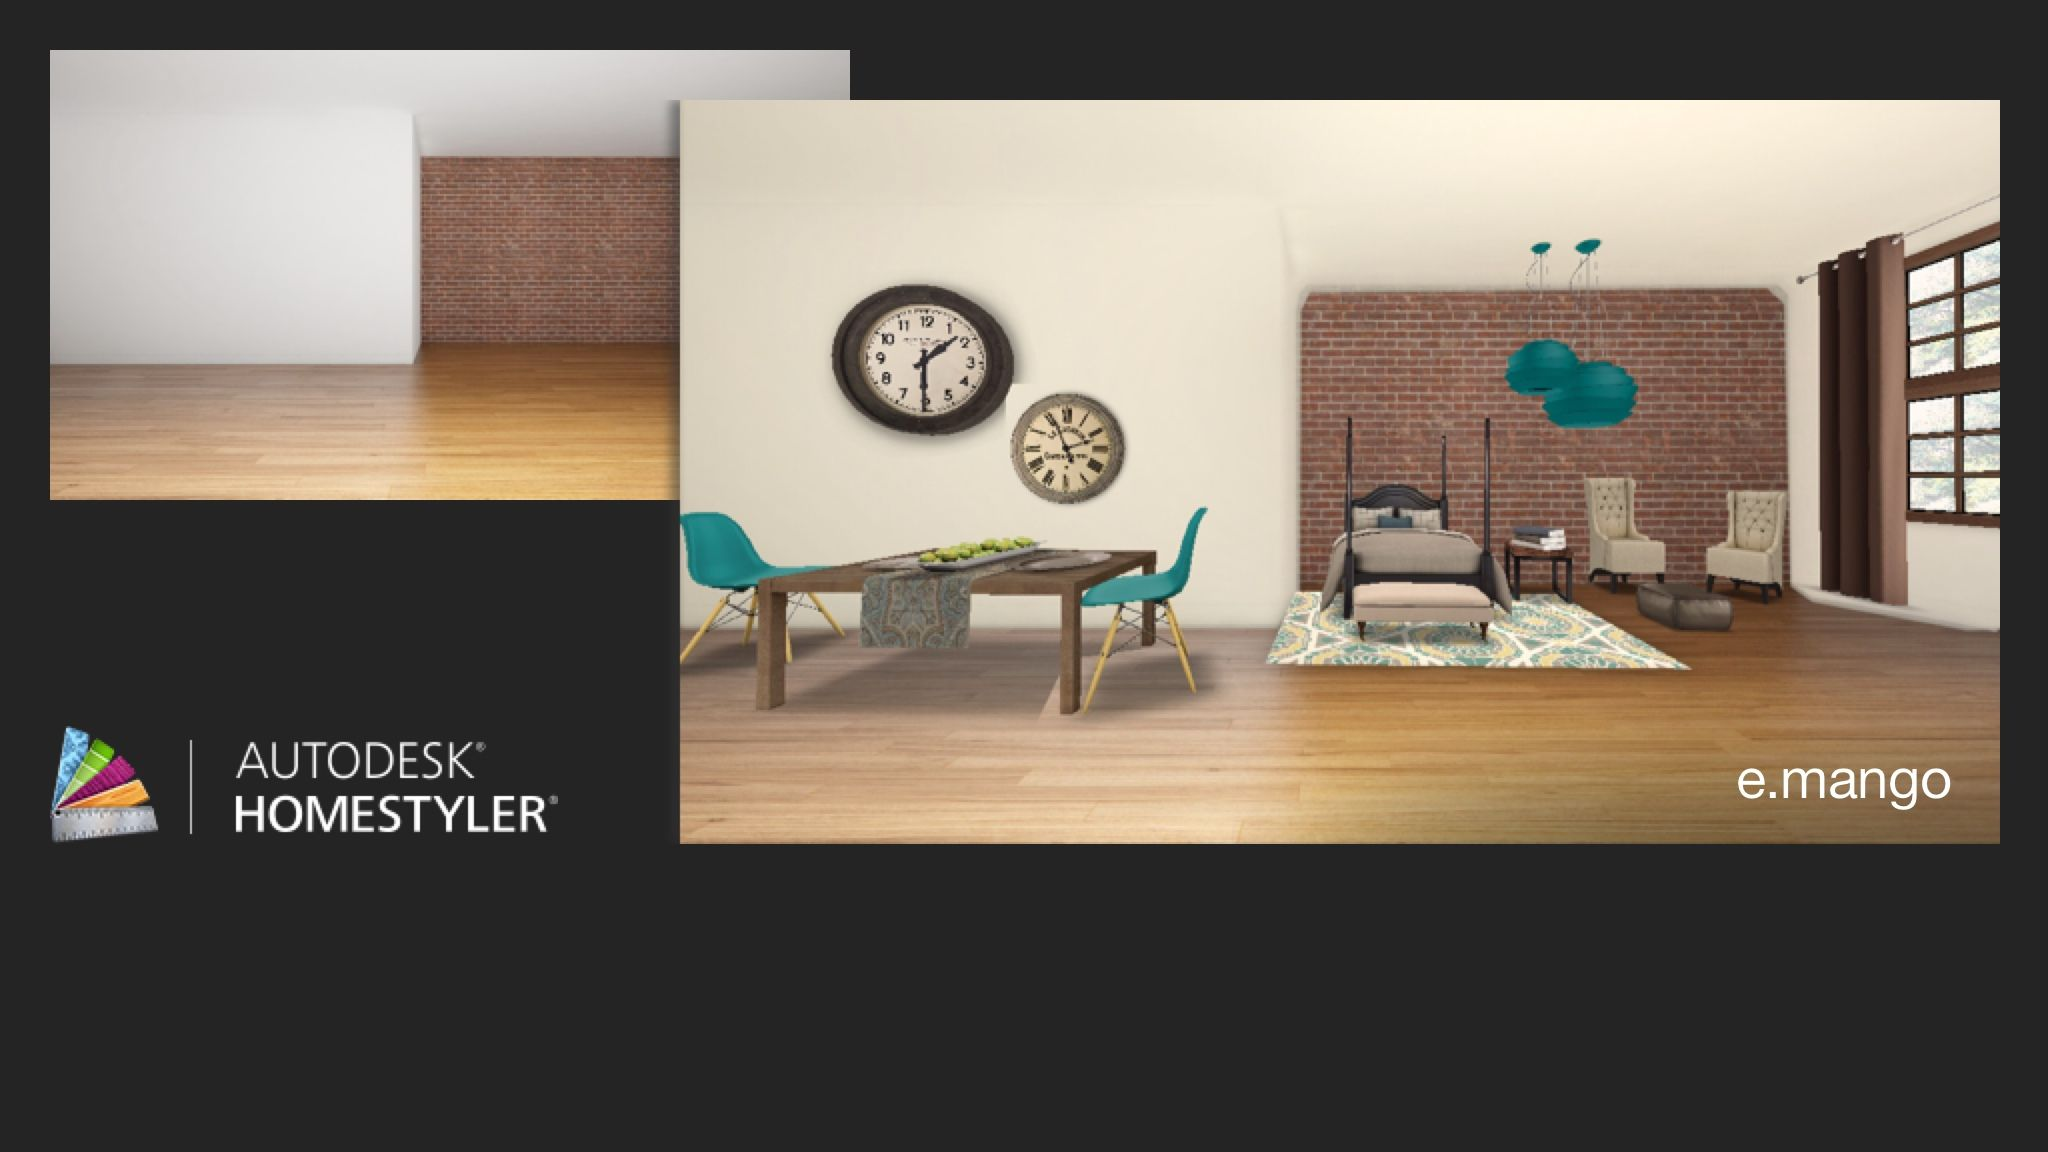 Living Room Design App Amazing I Made This Apartment On A Game Called Home Stylerit Is The Best 2018